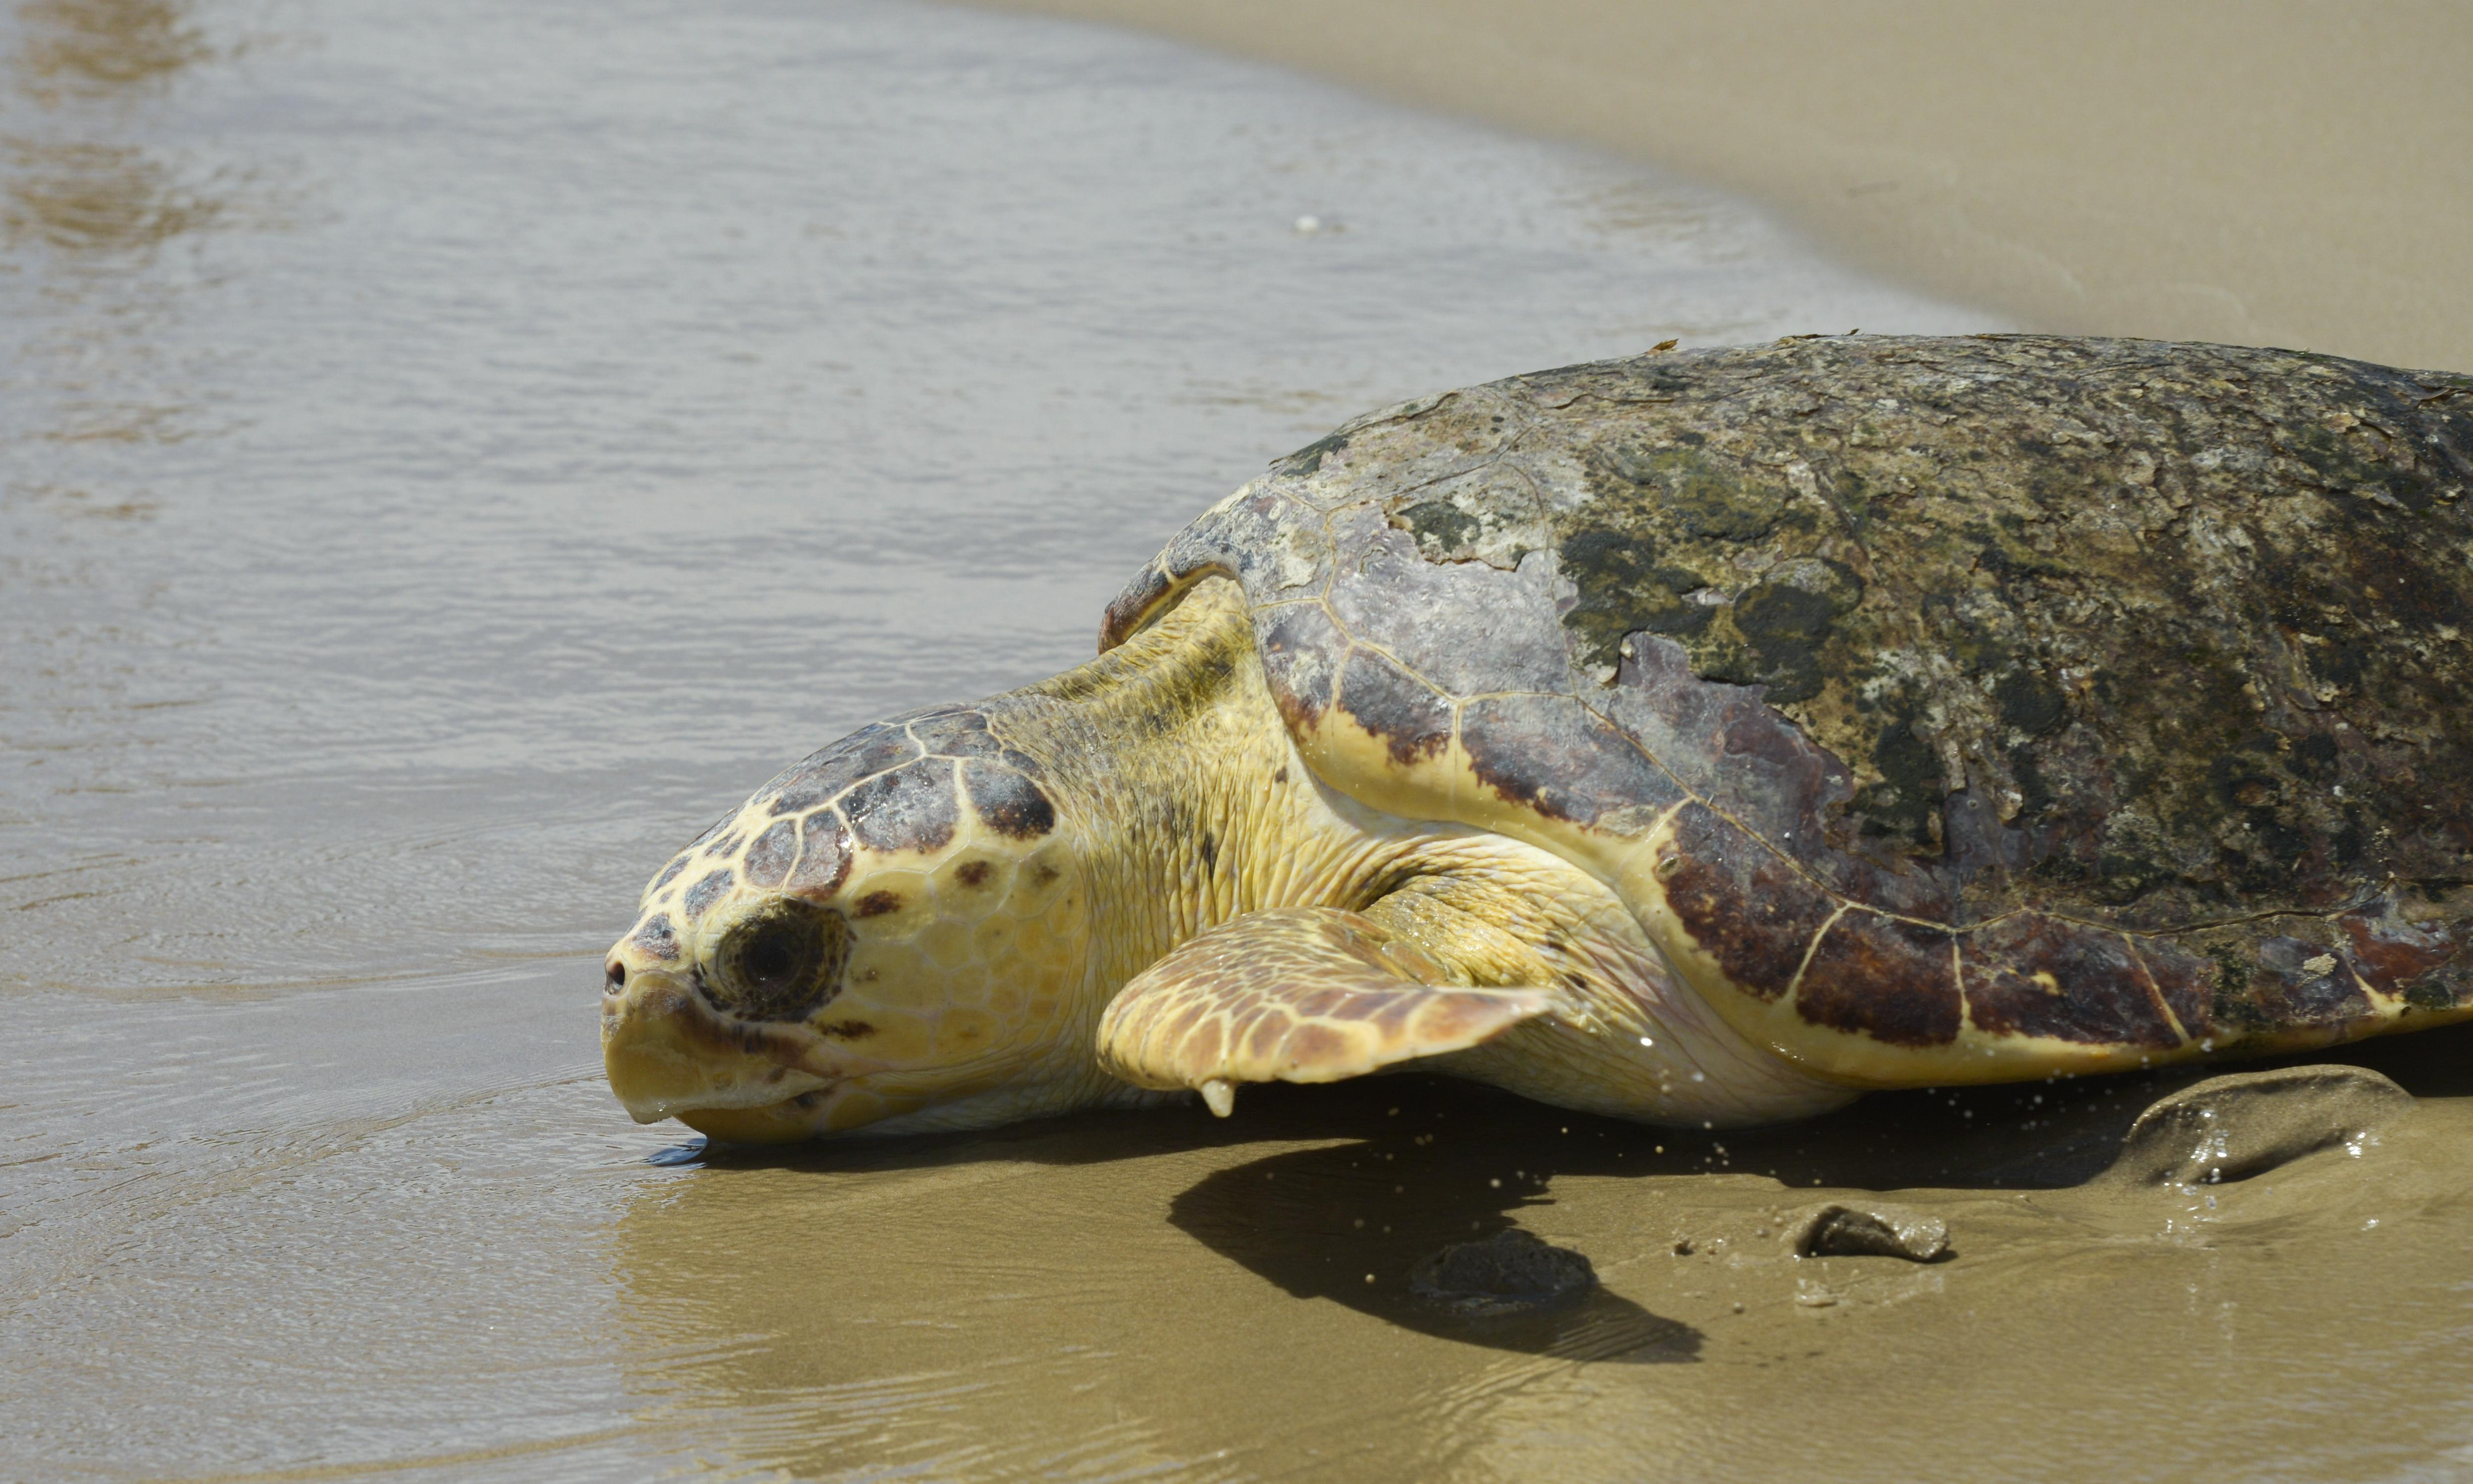 Sea turtles at risk as Trump weakens protections of animals endangered by climate crisis